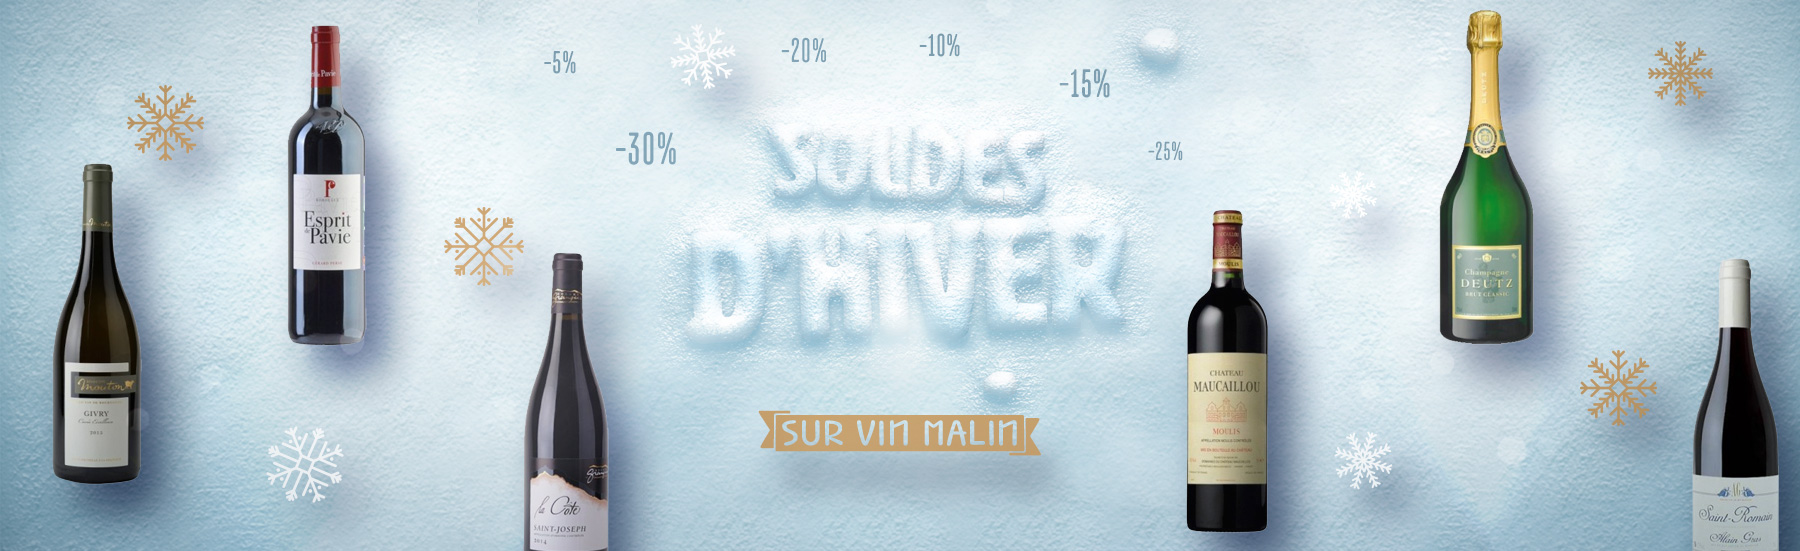 1800x551_soldes-hiver